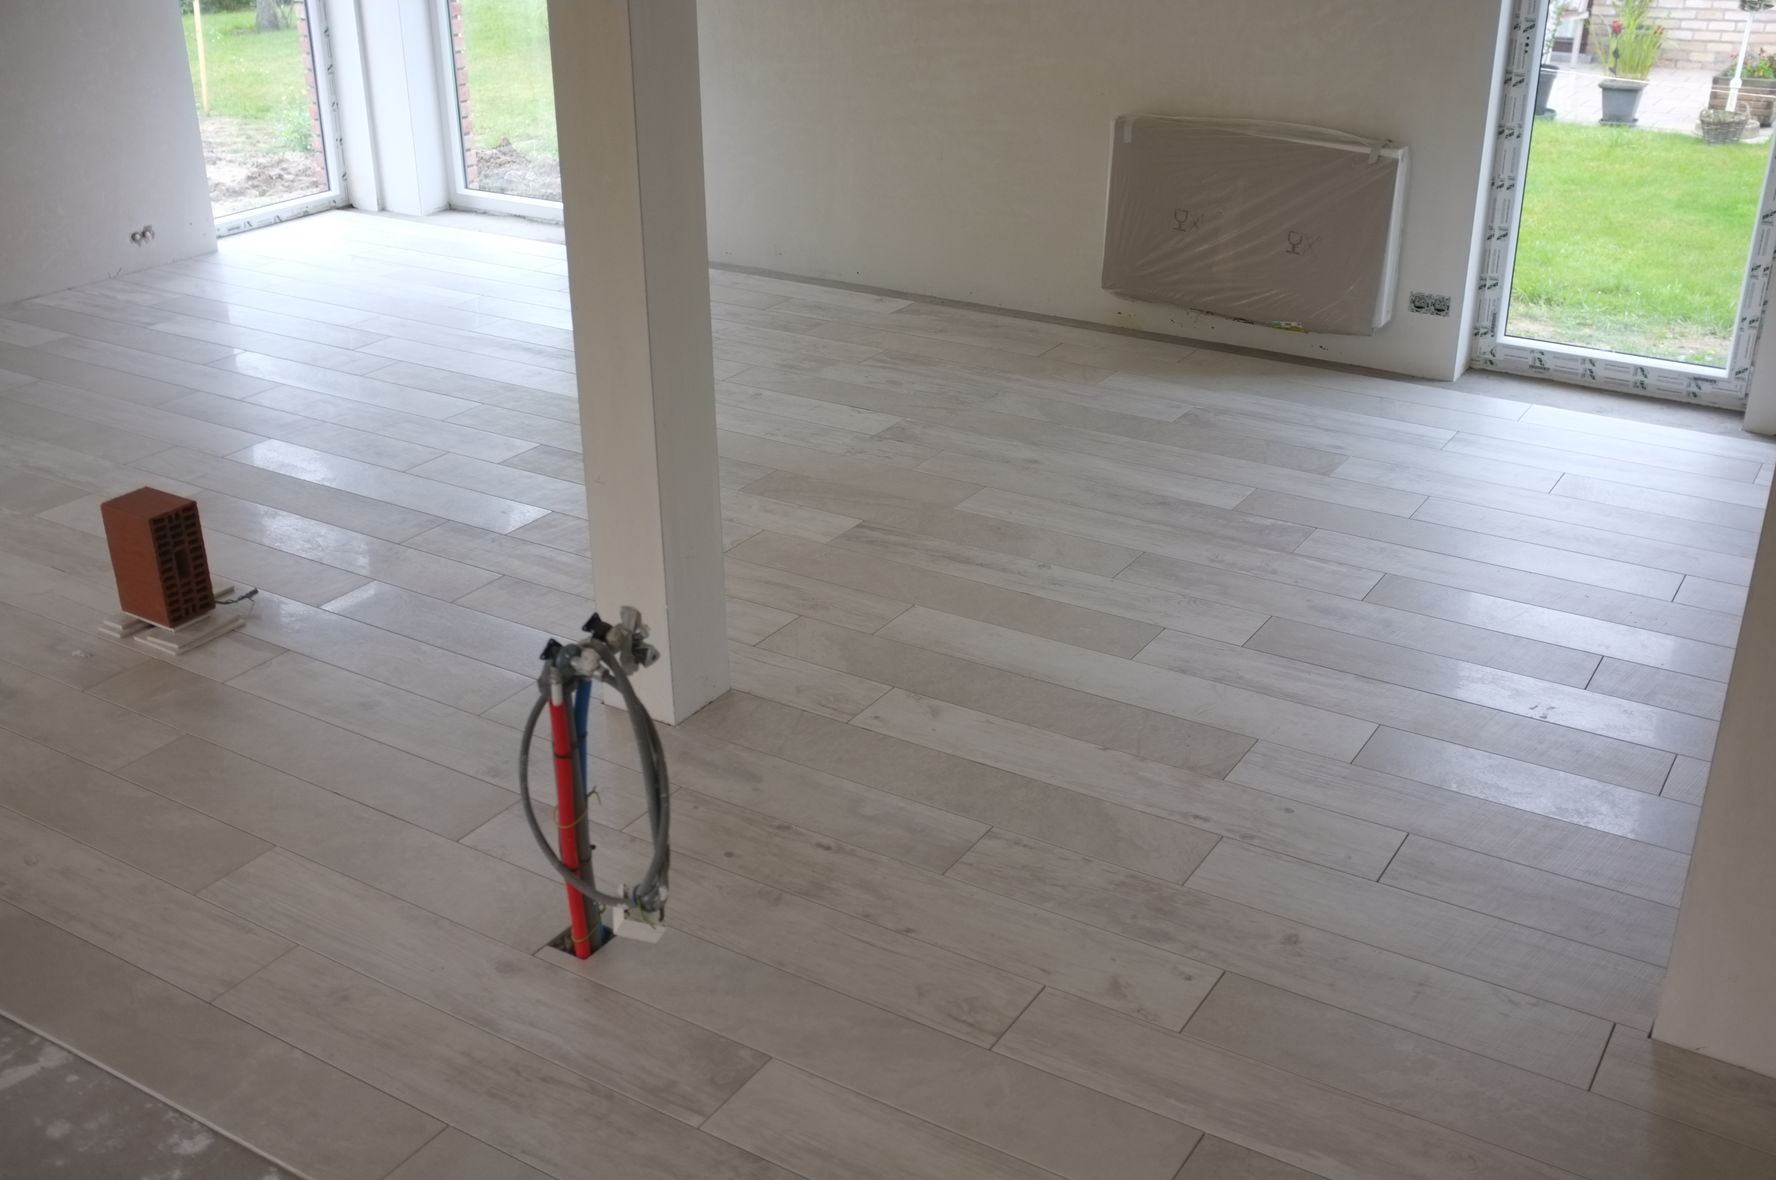 Le carrelage construction d 39 une maison thomas et piron - Pose carrelage imitation parquet ...